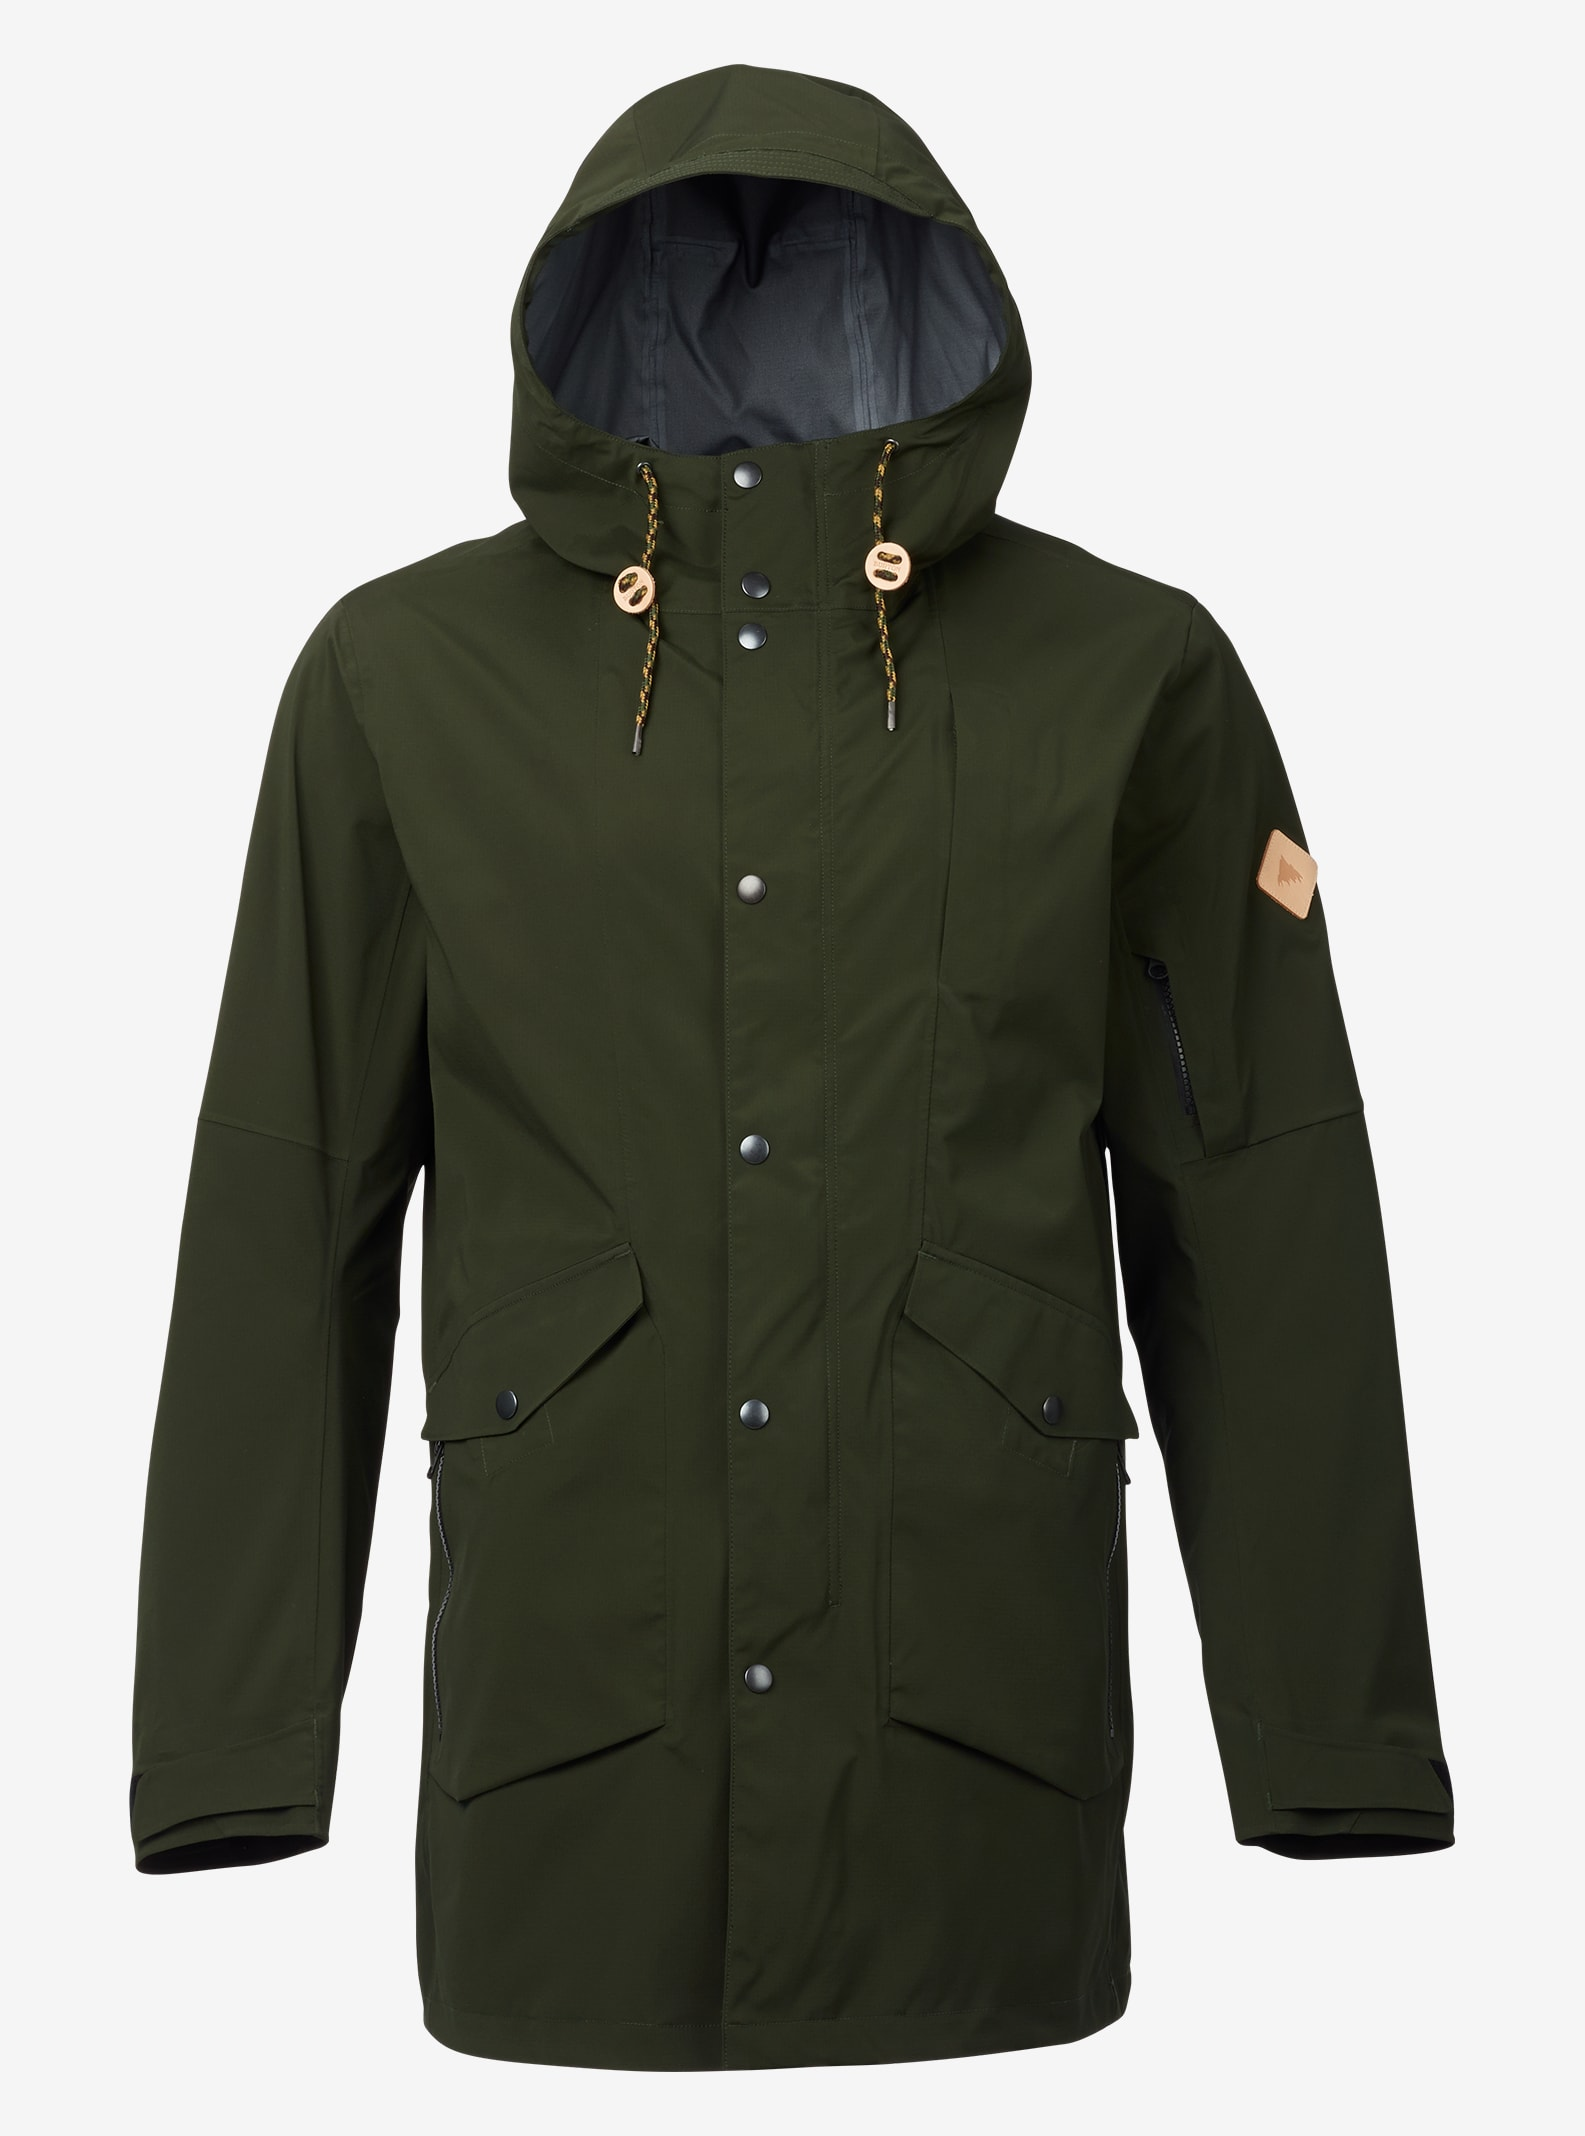 Burton GORE-TEX® 3L B-17 3L Rain Jacket shown in Rifle Green